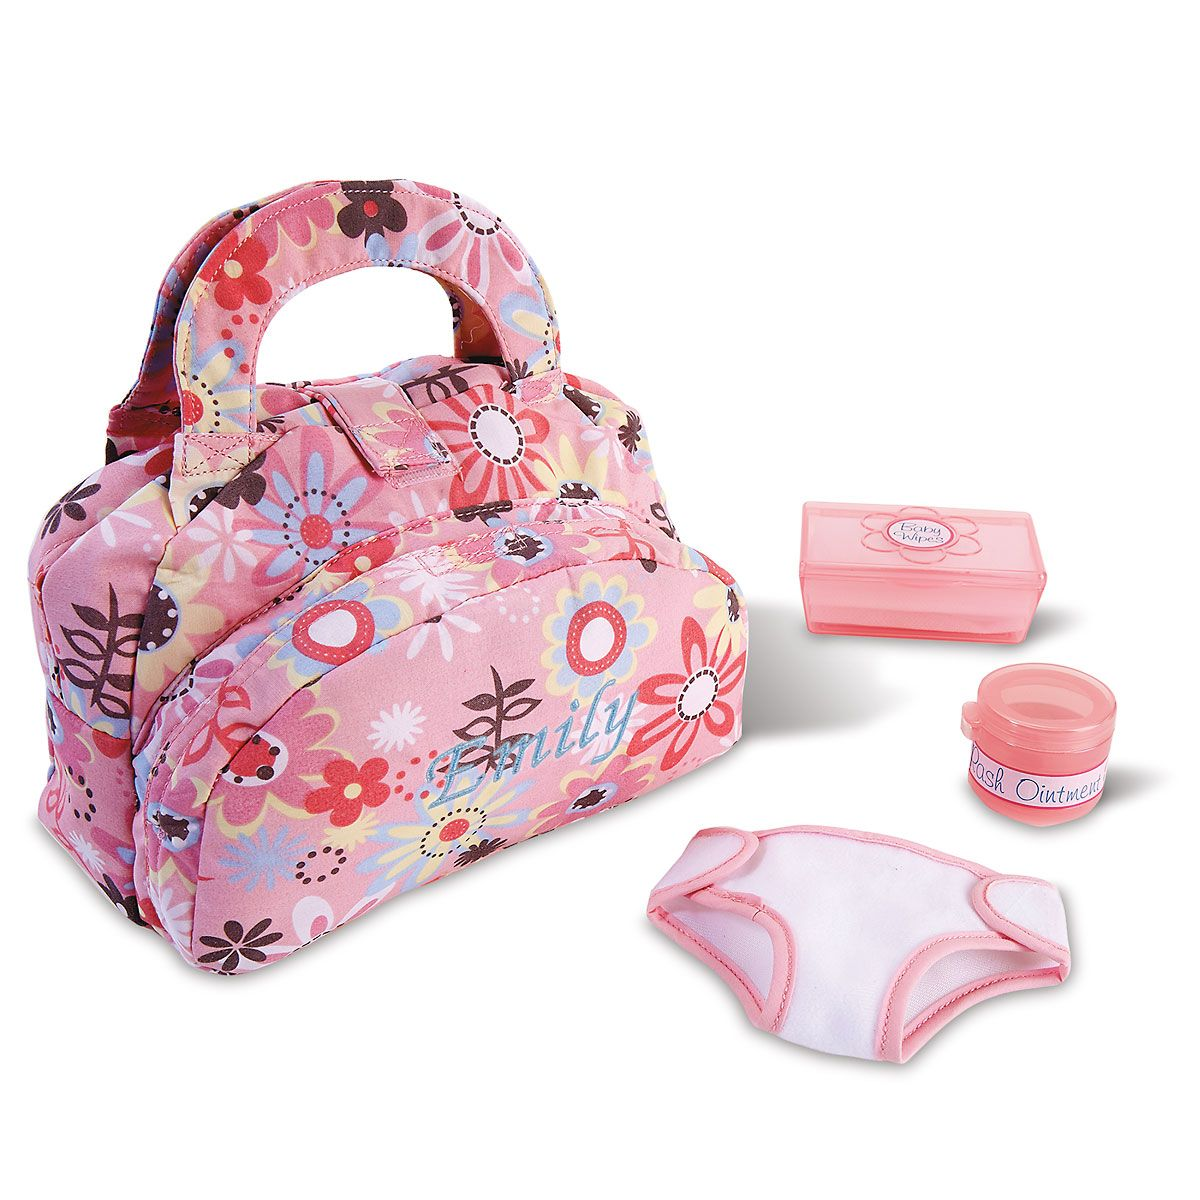 Diaper Bag by Melissa & Doug